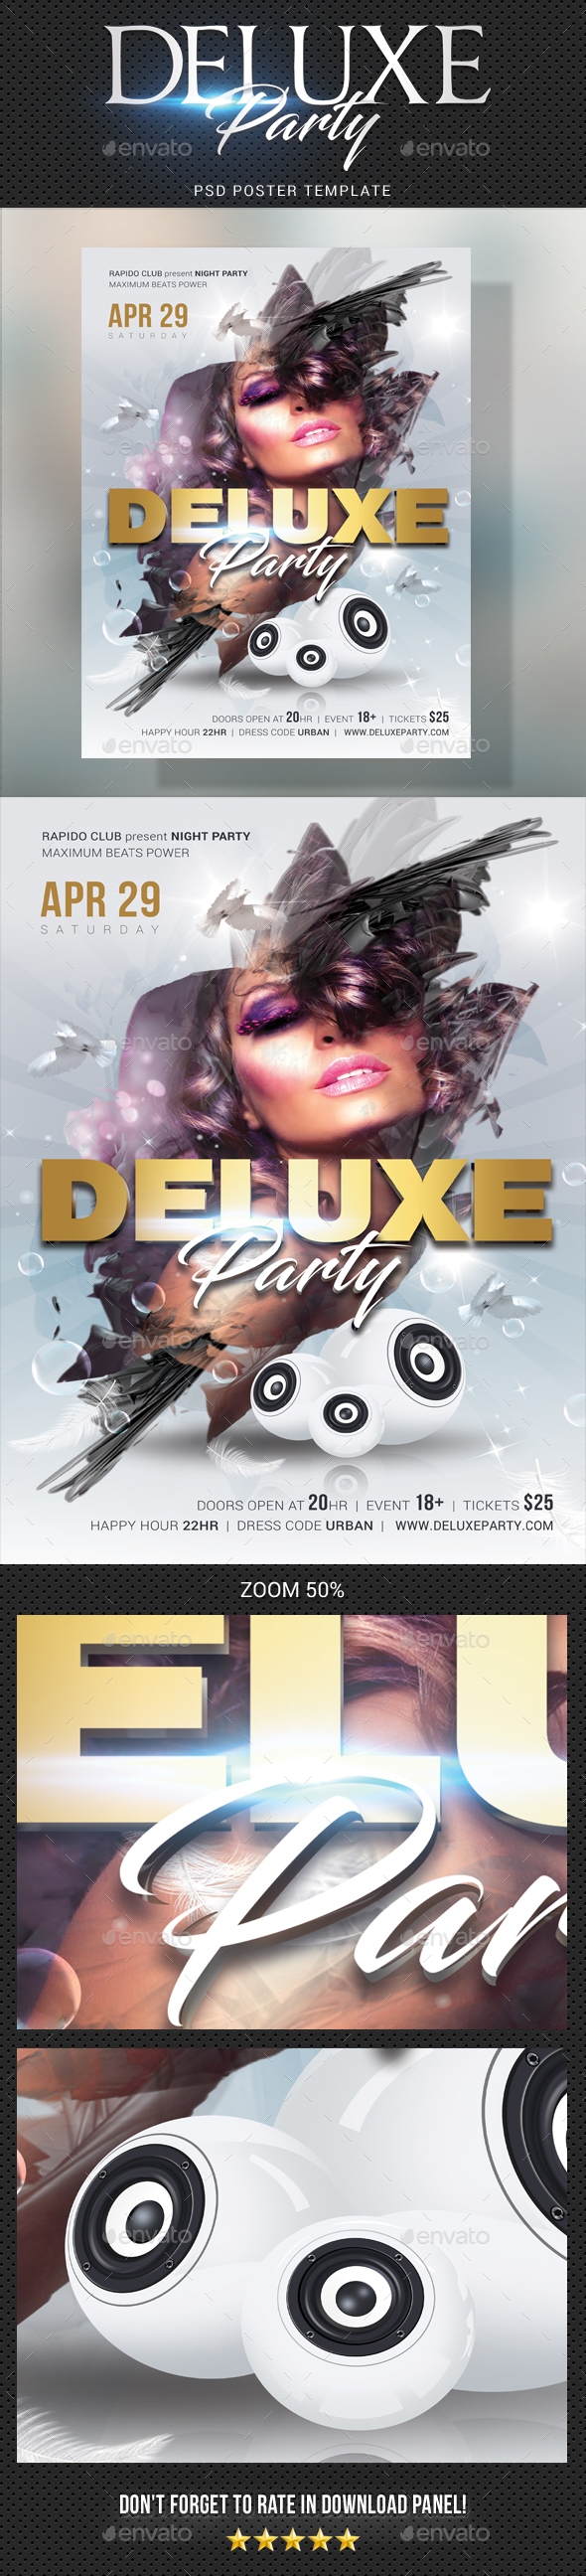 Deluxe Dj Party Poster 2 - Signage Print Templates